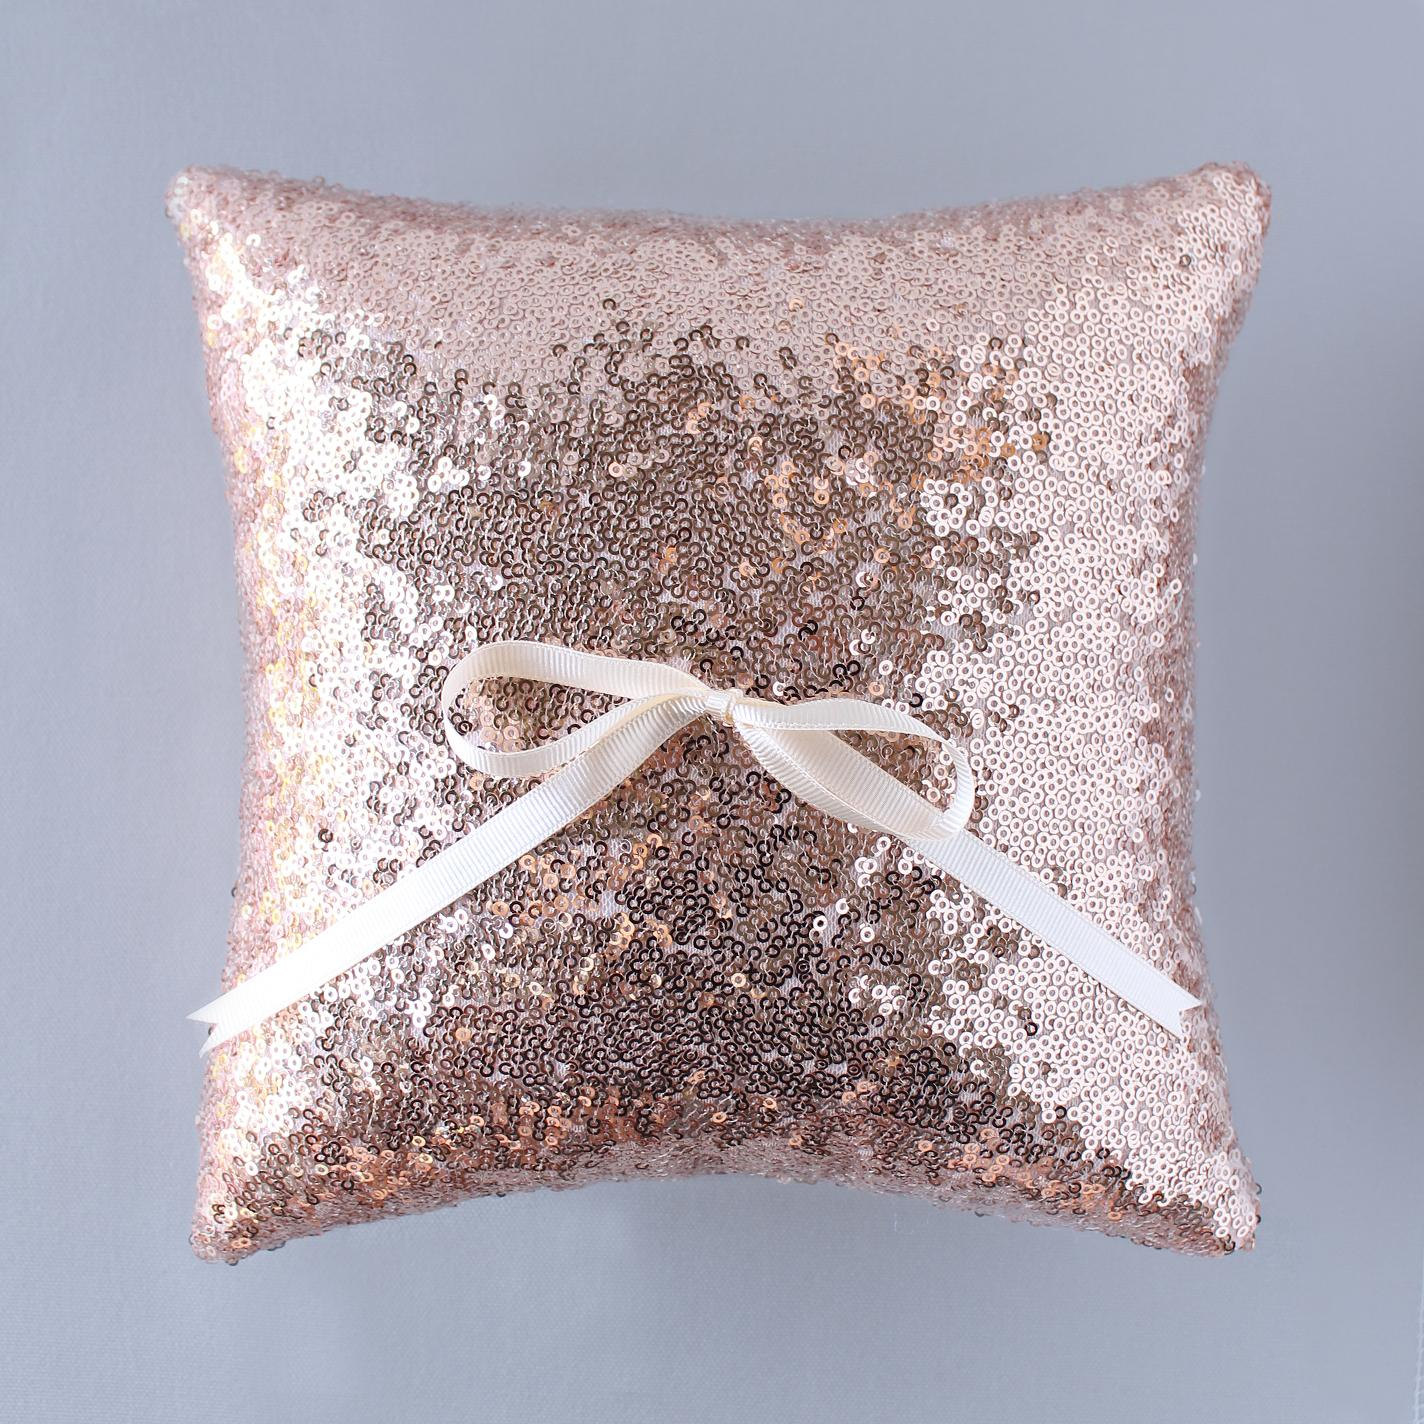 Image of: Rose Gold Pillow Ideas